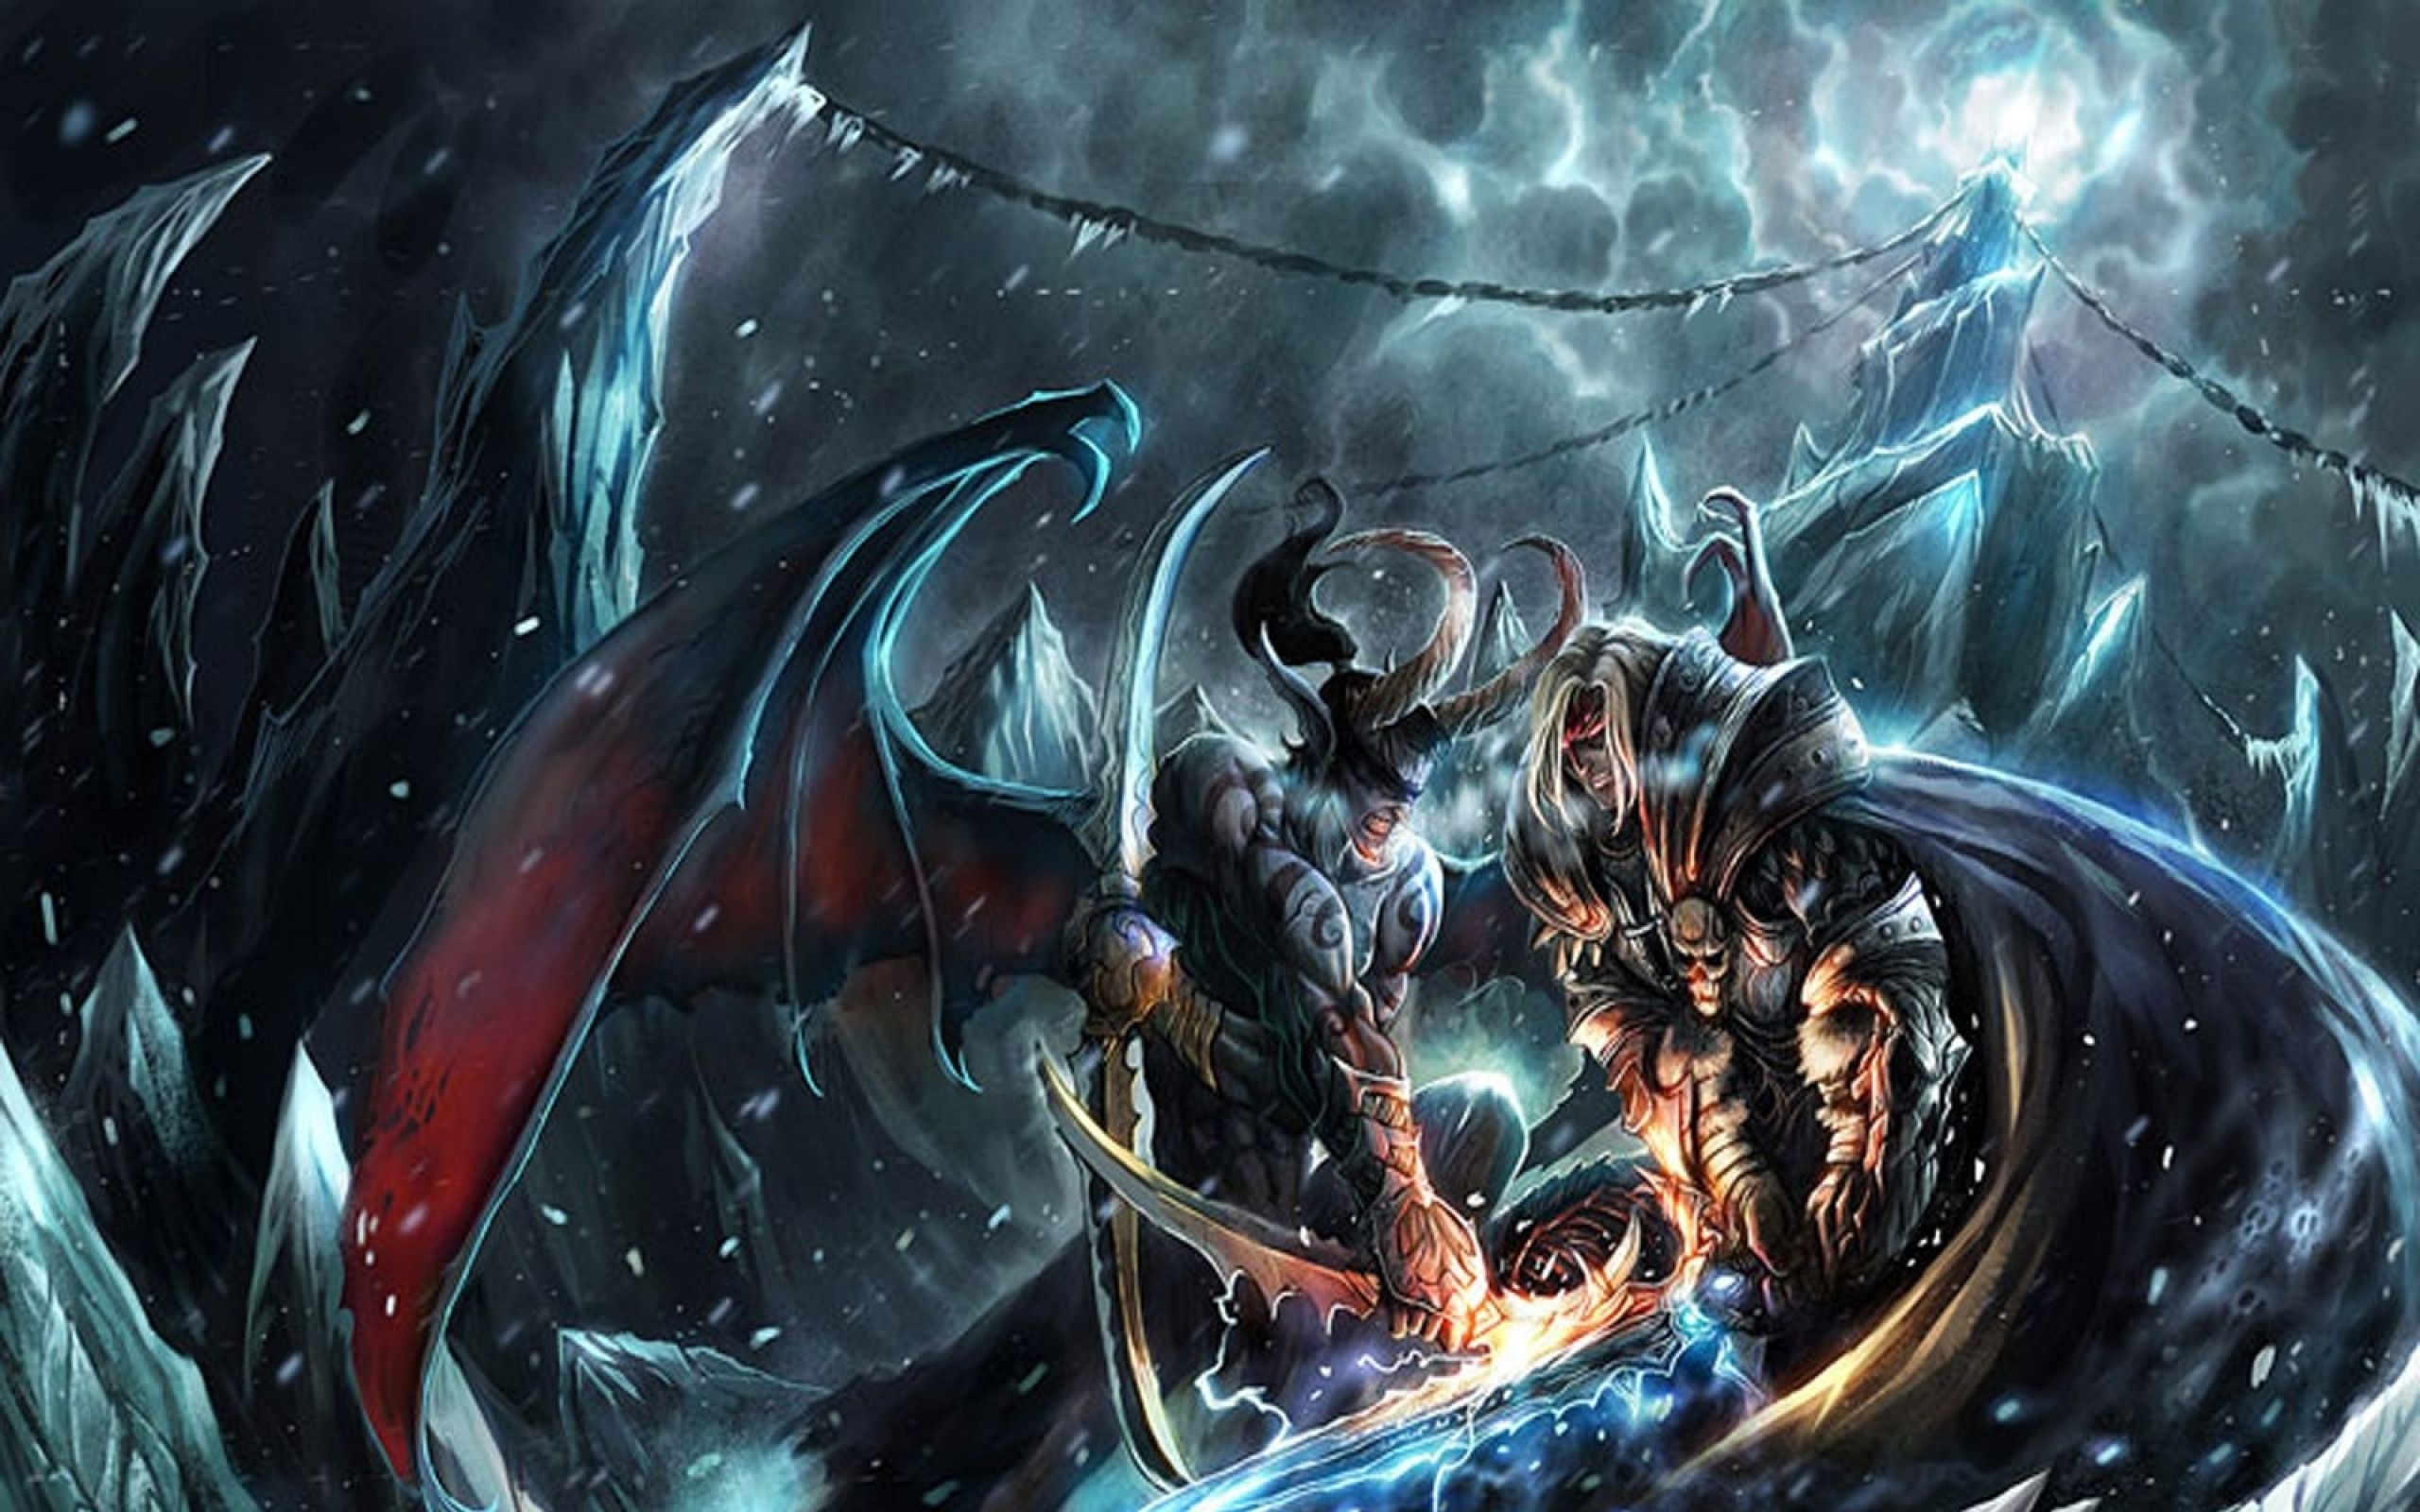 Download The Latest Warcraft 3 Frozen Throne Hd Wallpapers From